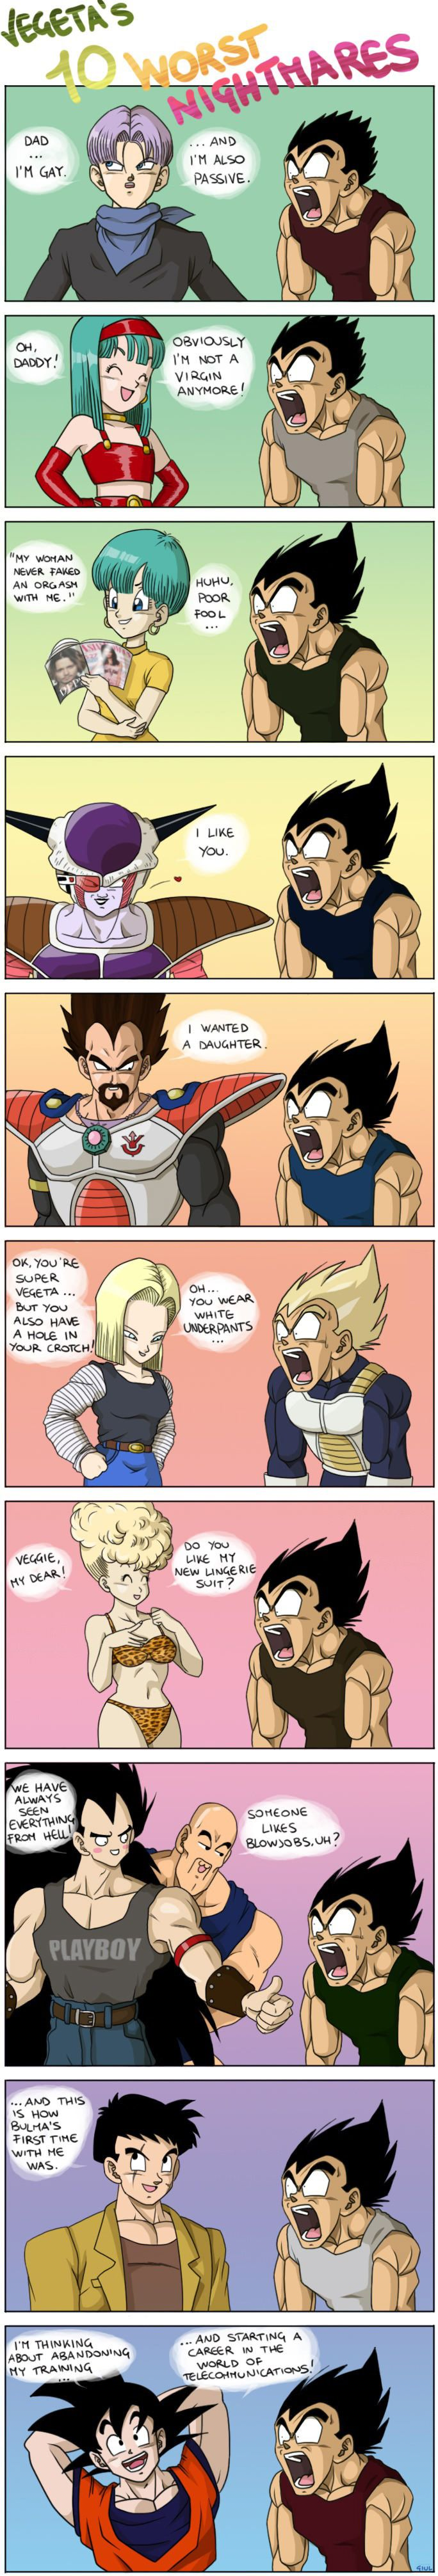 Vegeta's Ten Worst Nightmares